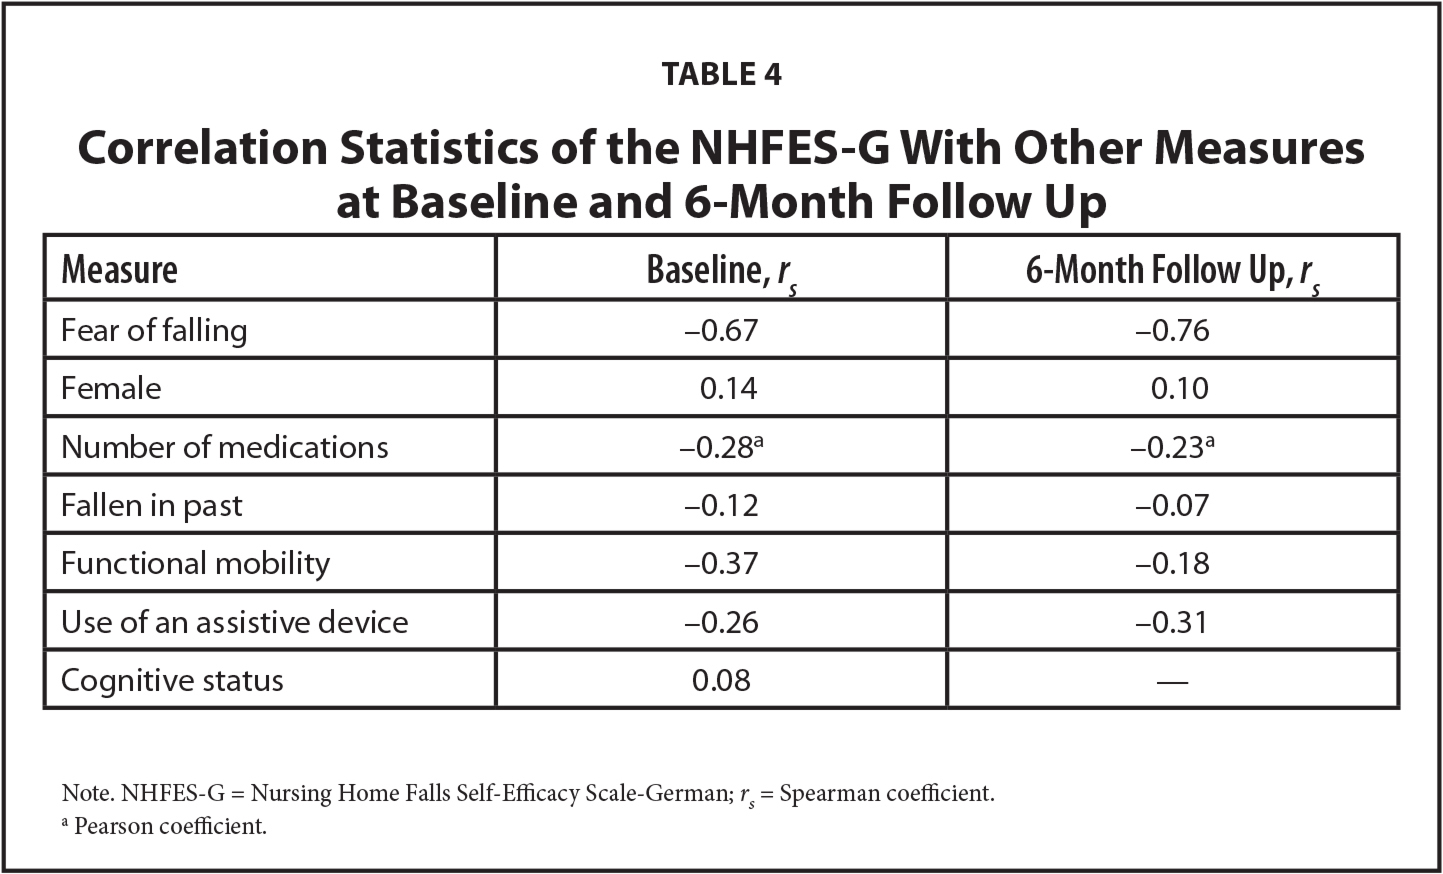 """dissertation self-efficacy scale Studies for acceptance a thesis entitled """"the nursing competence self-efficacy scale (ncses): an instrument development and psychometric assessment study"""" by evelyn kennedy in partial fulfilment of the requirements for the degree of doctor of philosophy."""